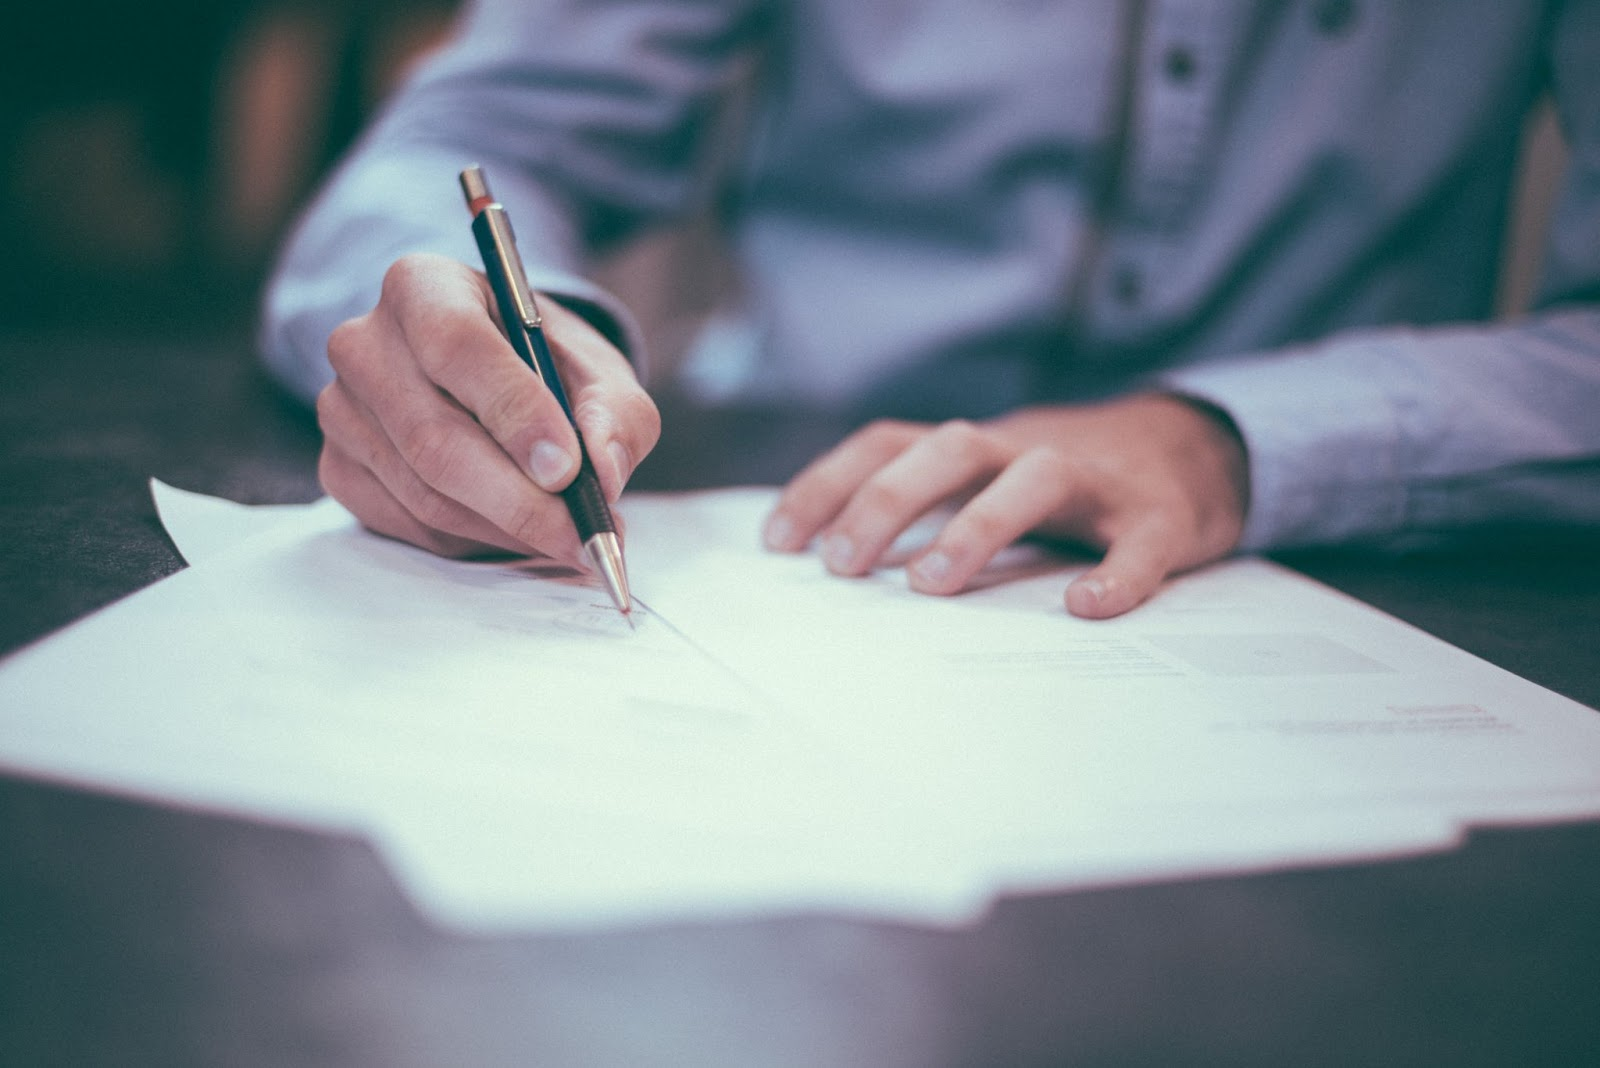 Get members to sign liability waivers and protect your facility